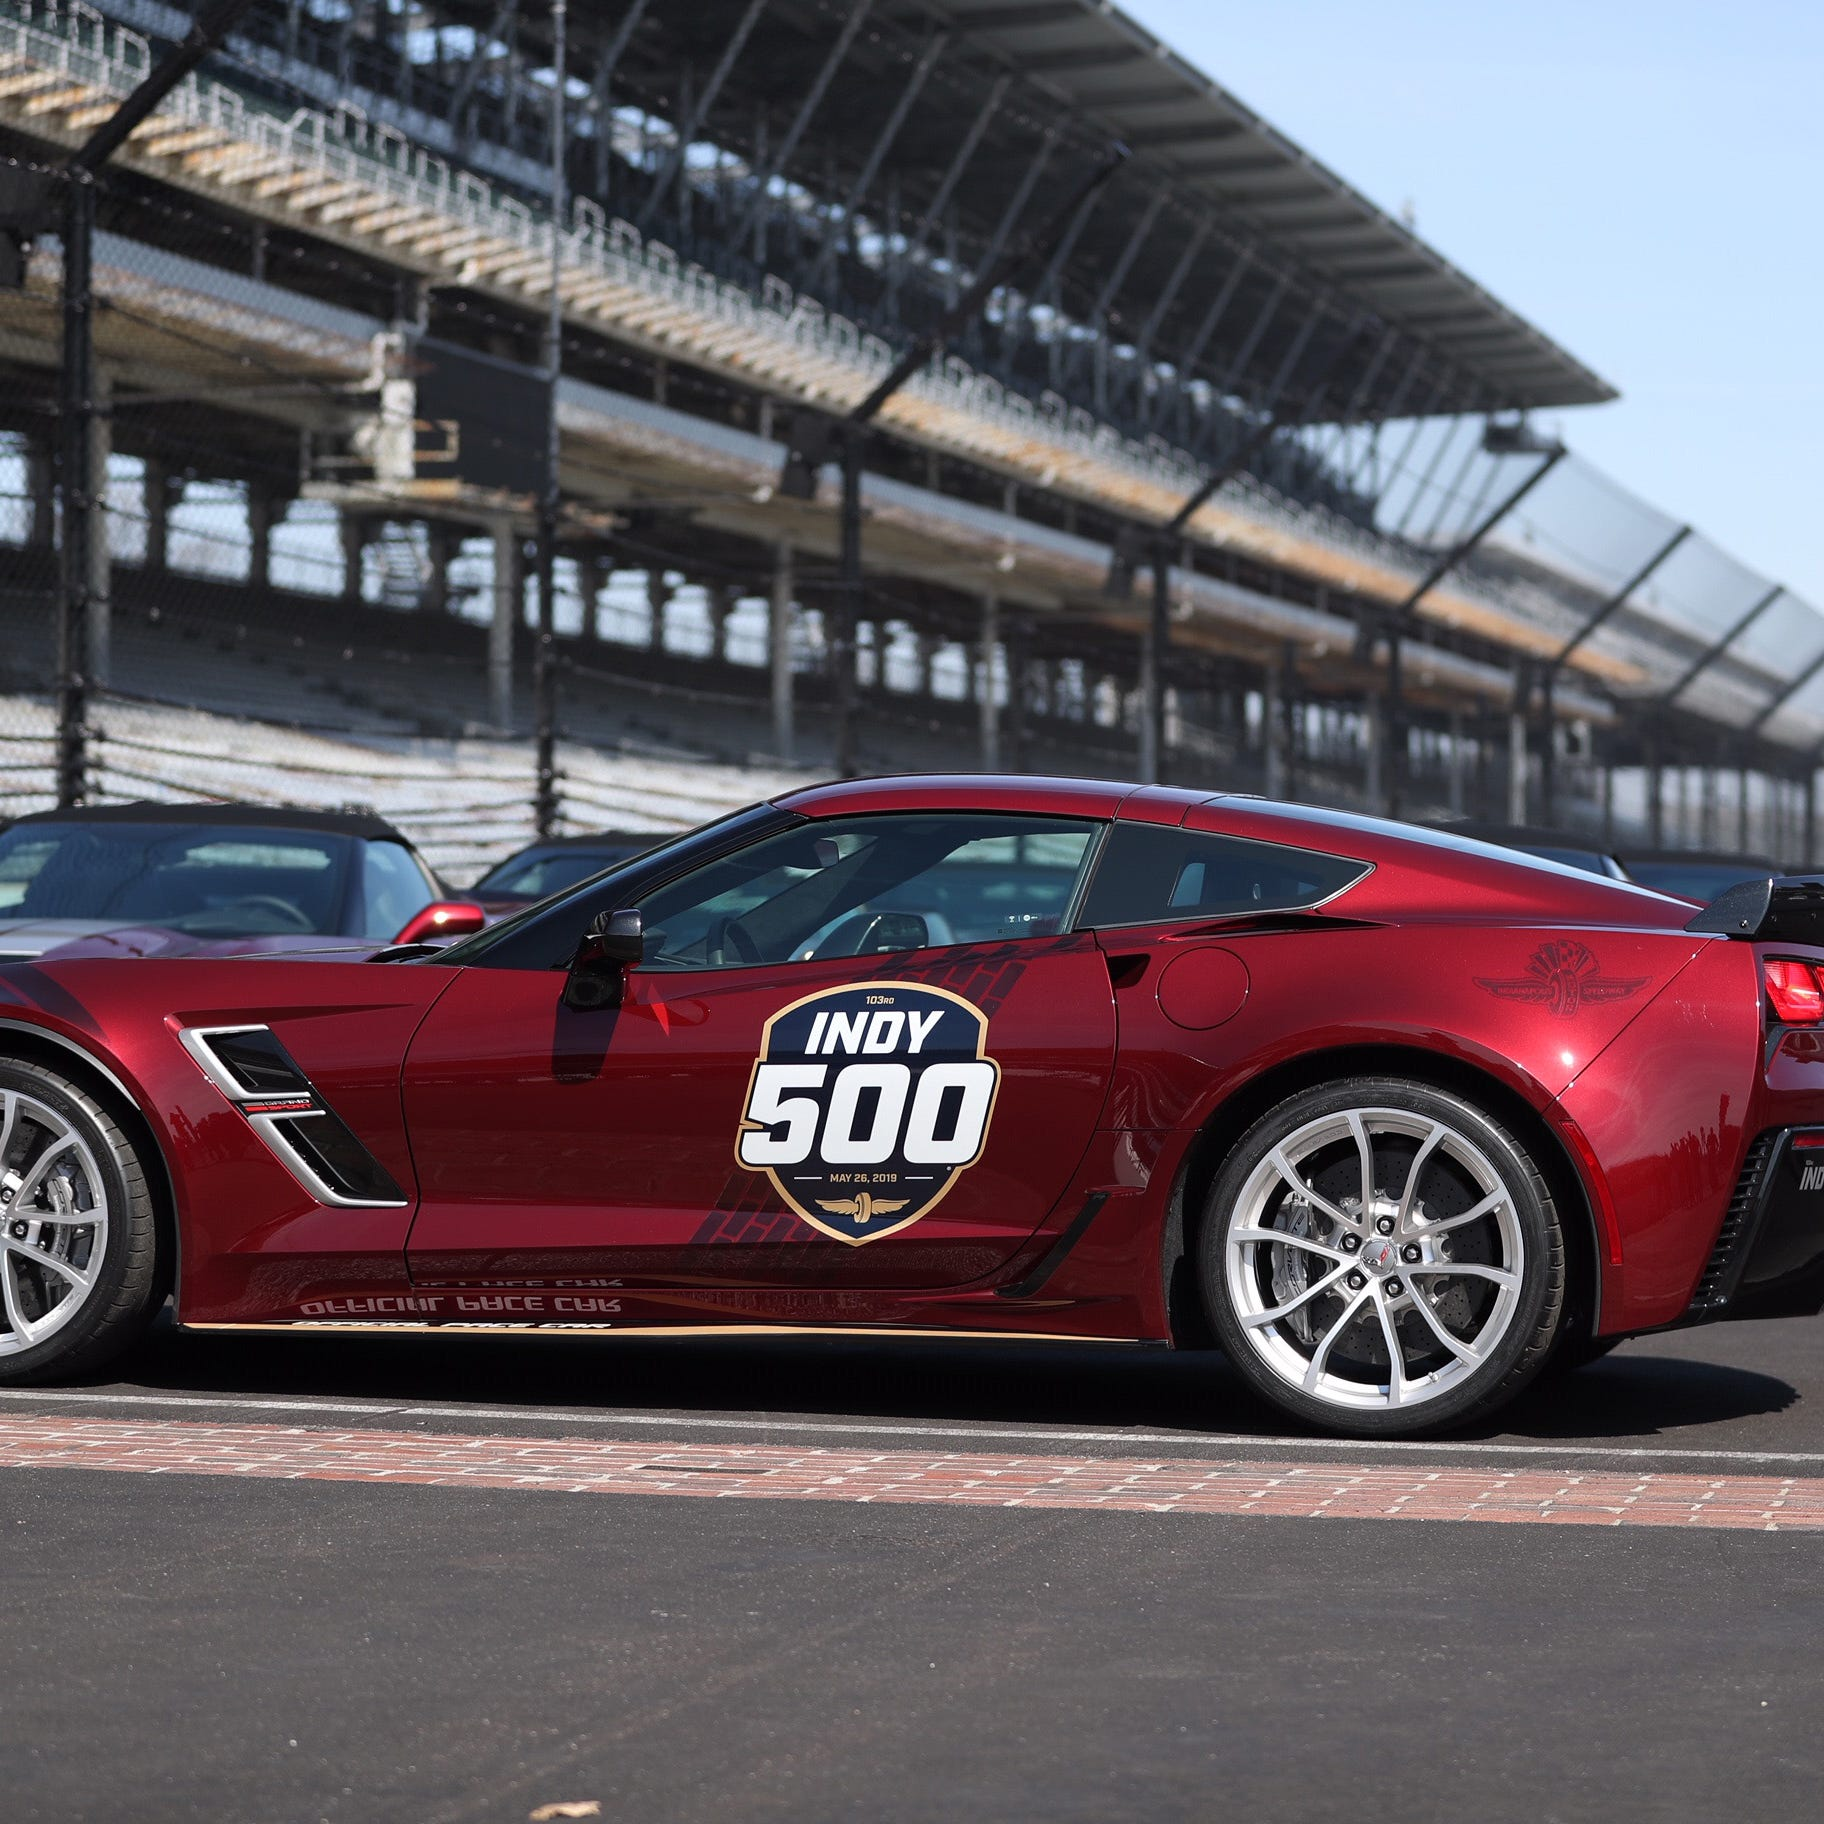 See the 2019 Indy 500 Pace Car